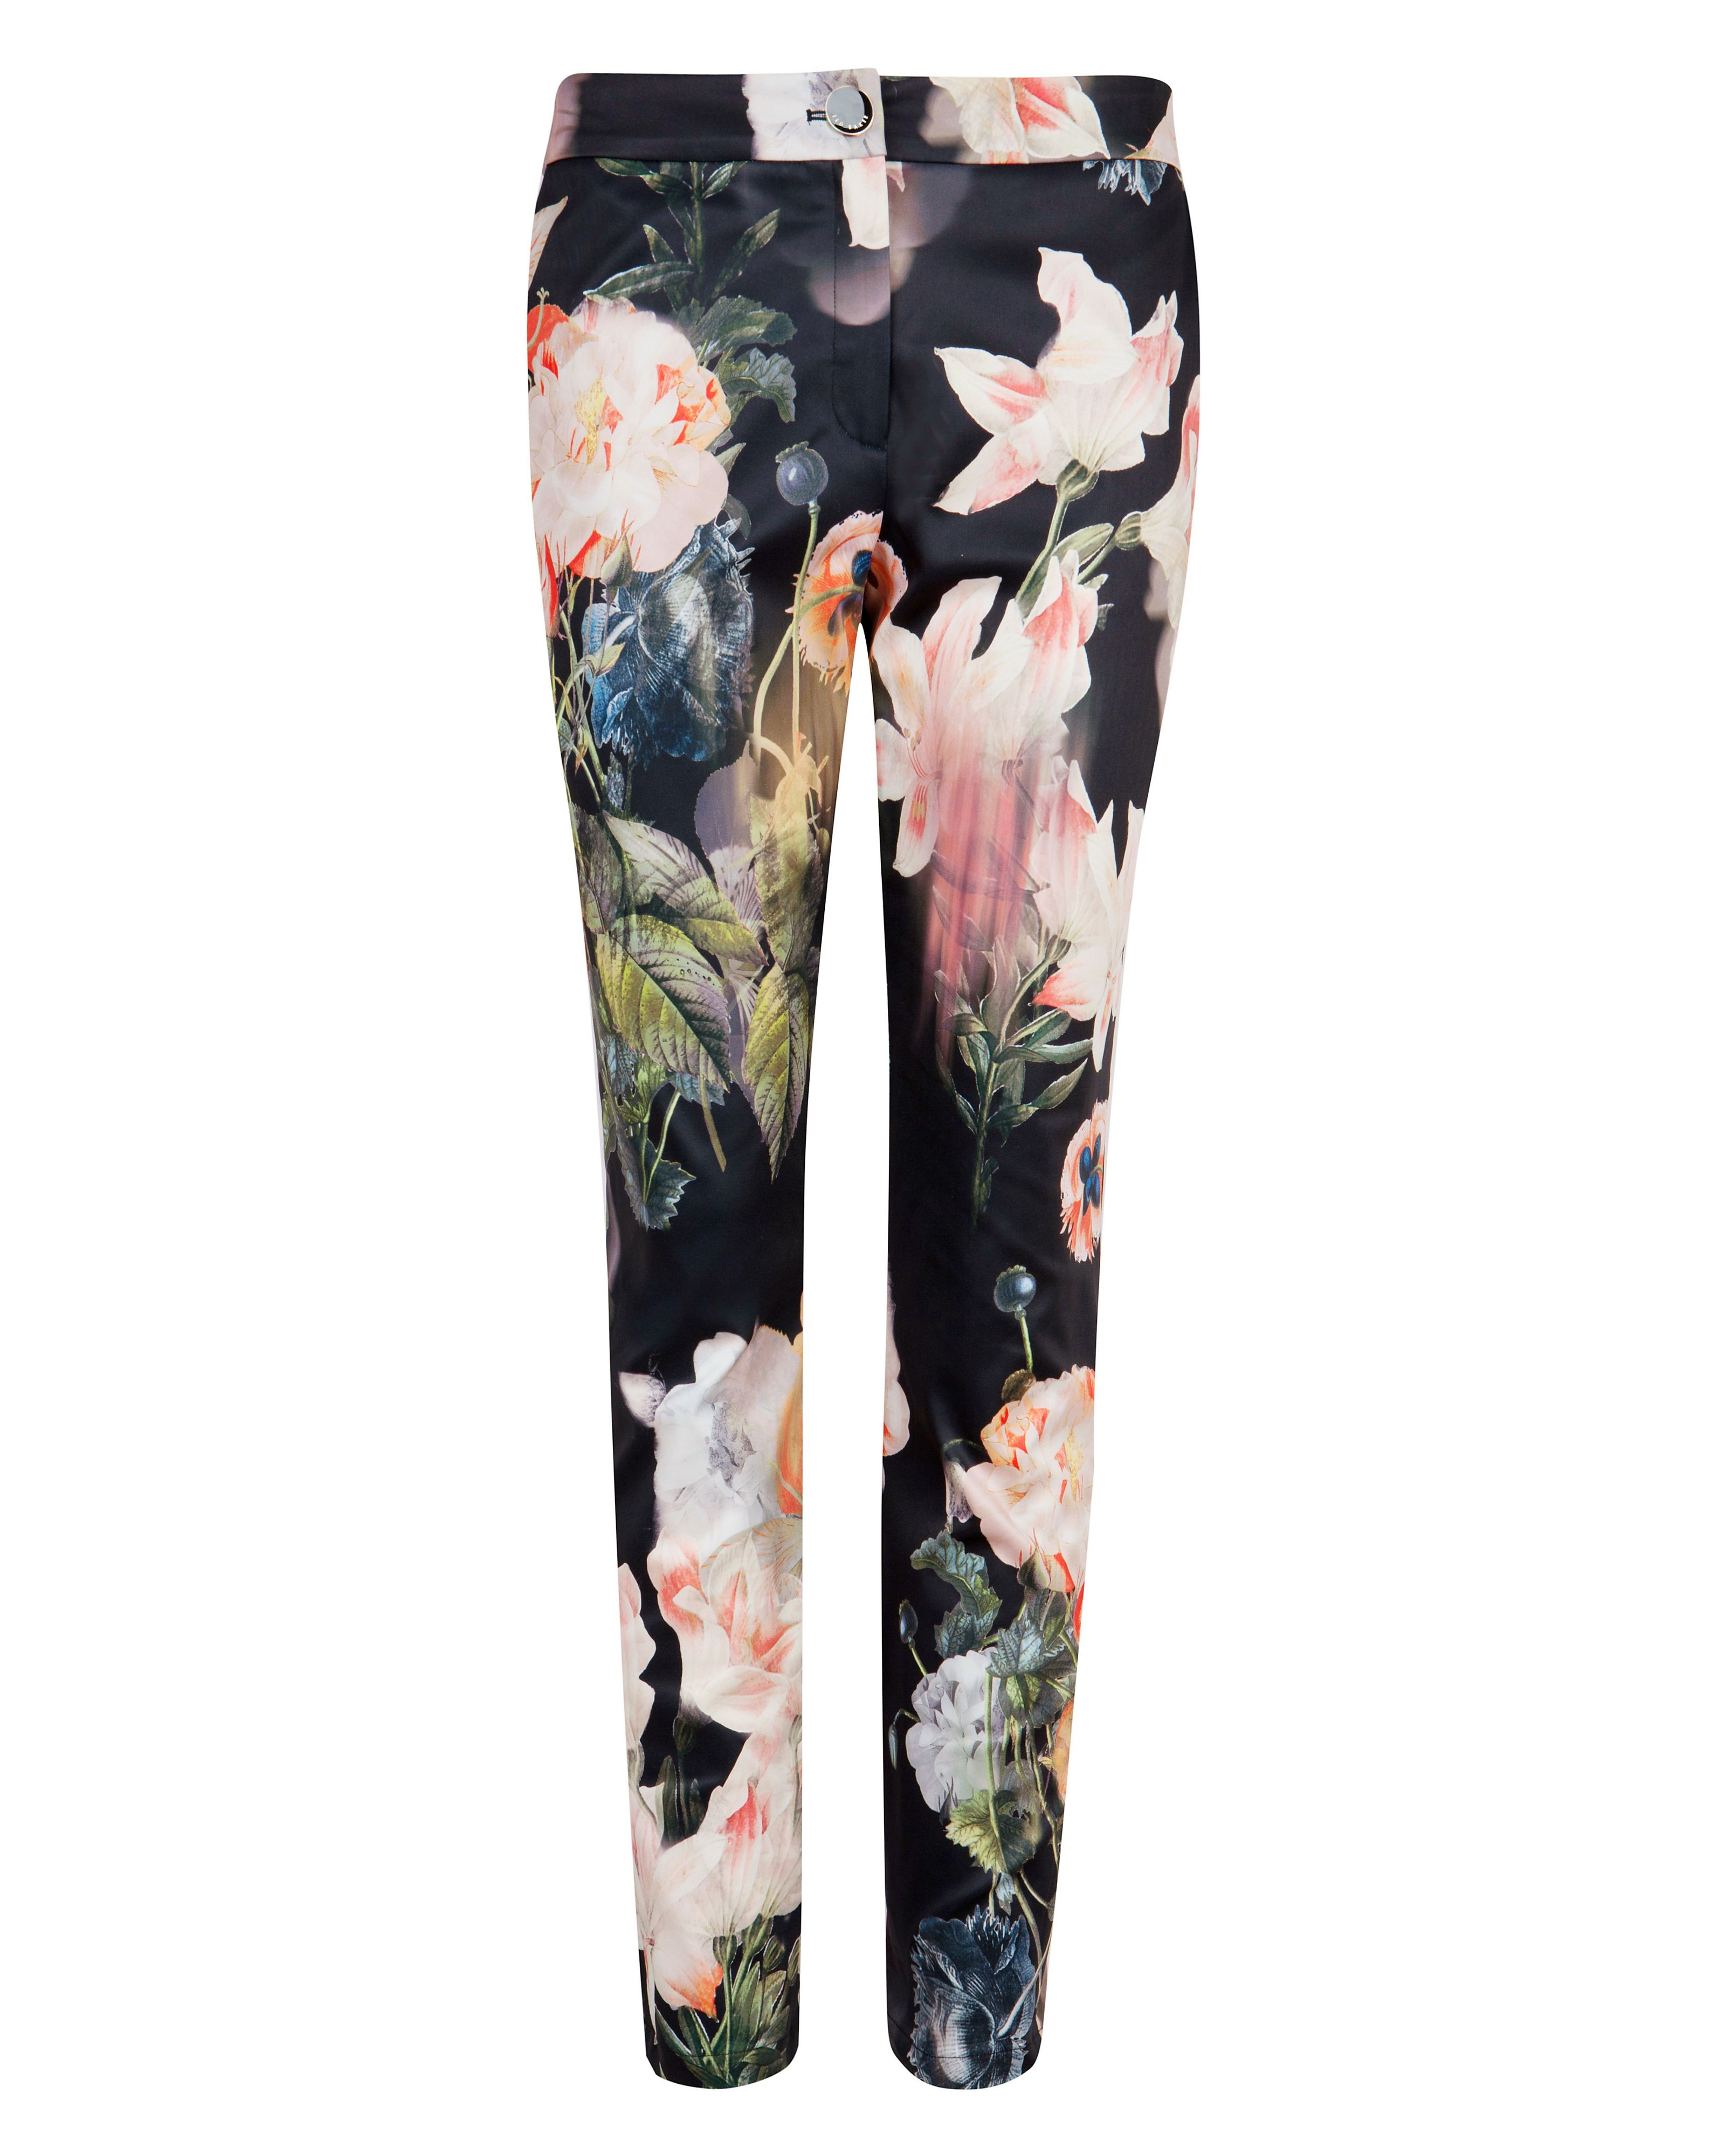 For Cheap Jungle Print Trousers Ted Baker Free Shipping Release Dates For Sale Cheap Price 0Le4H